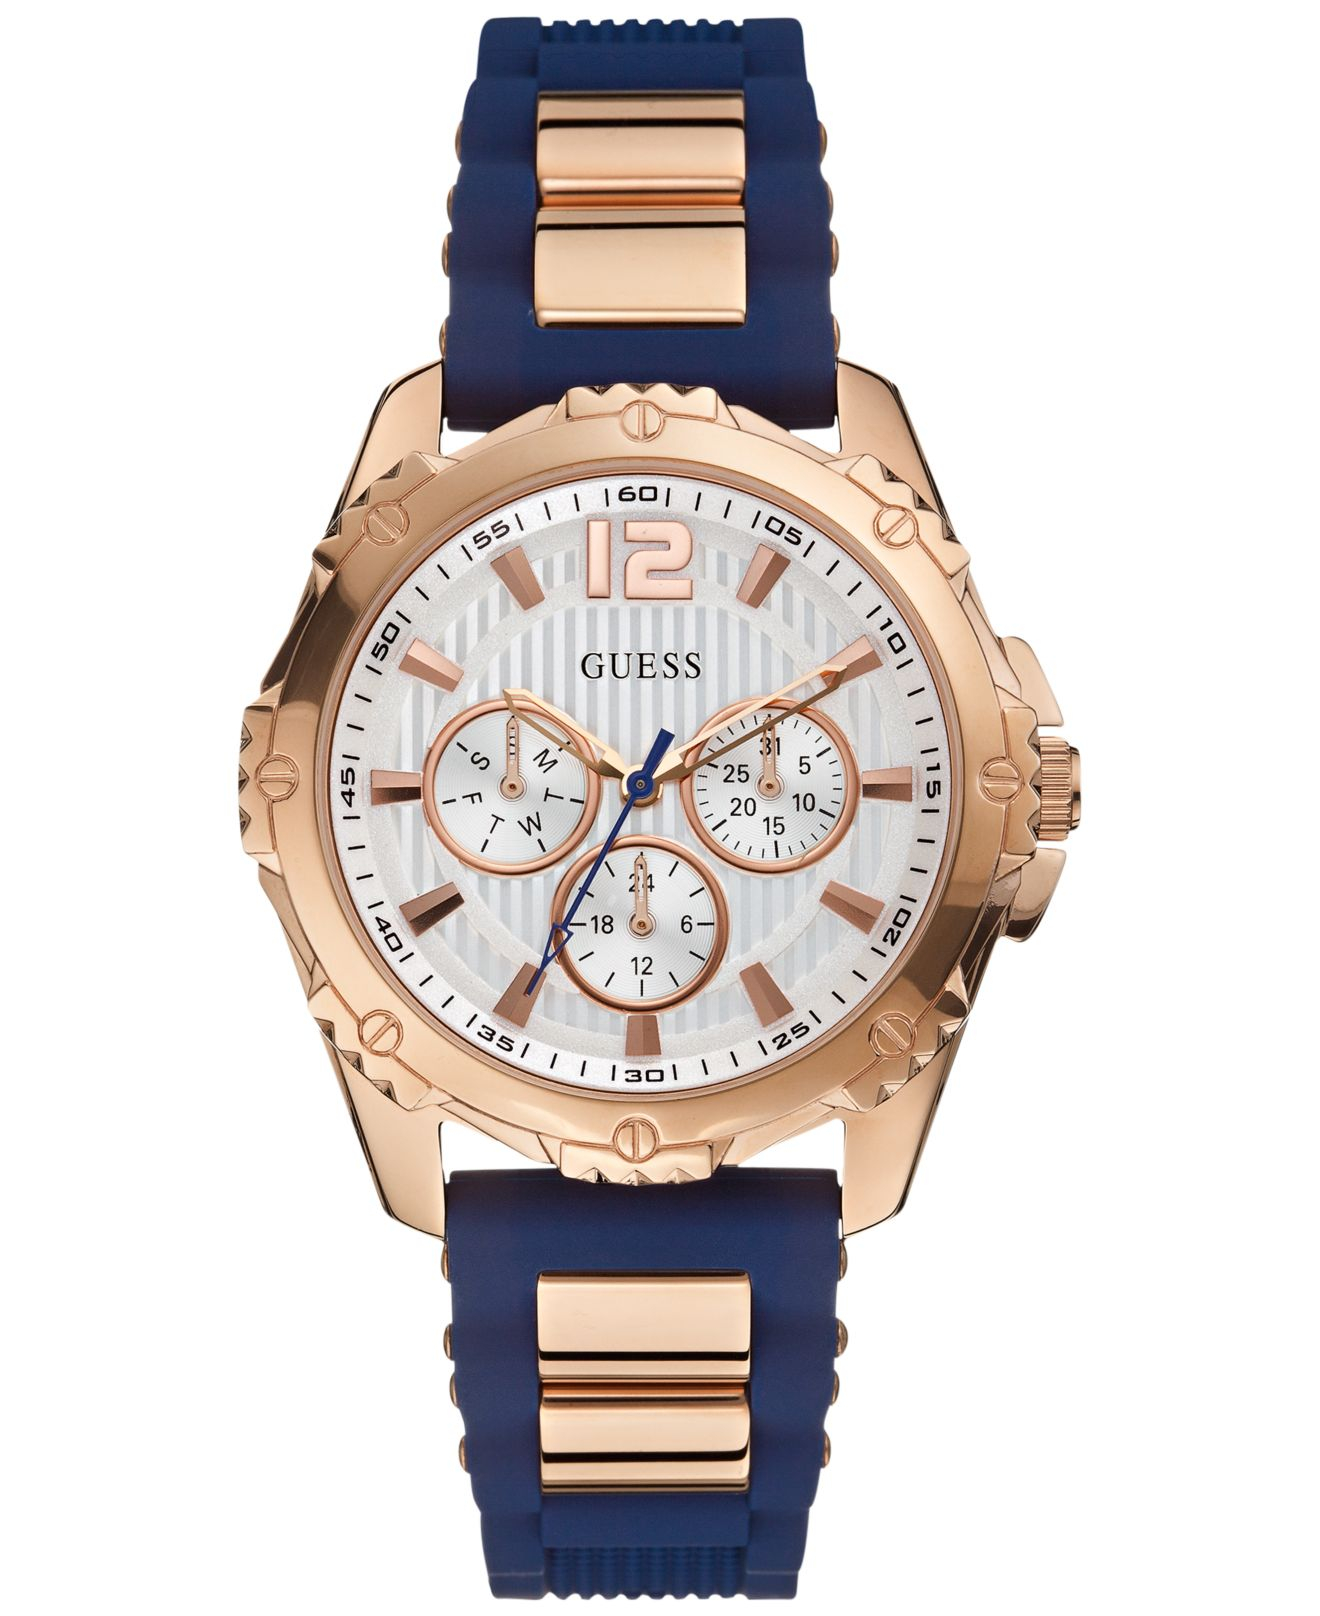 Guess Women's Navy Silicone Strap Watch 42mm U0325l8 in ...